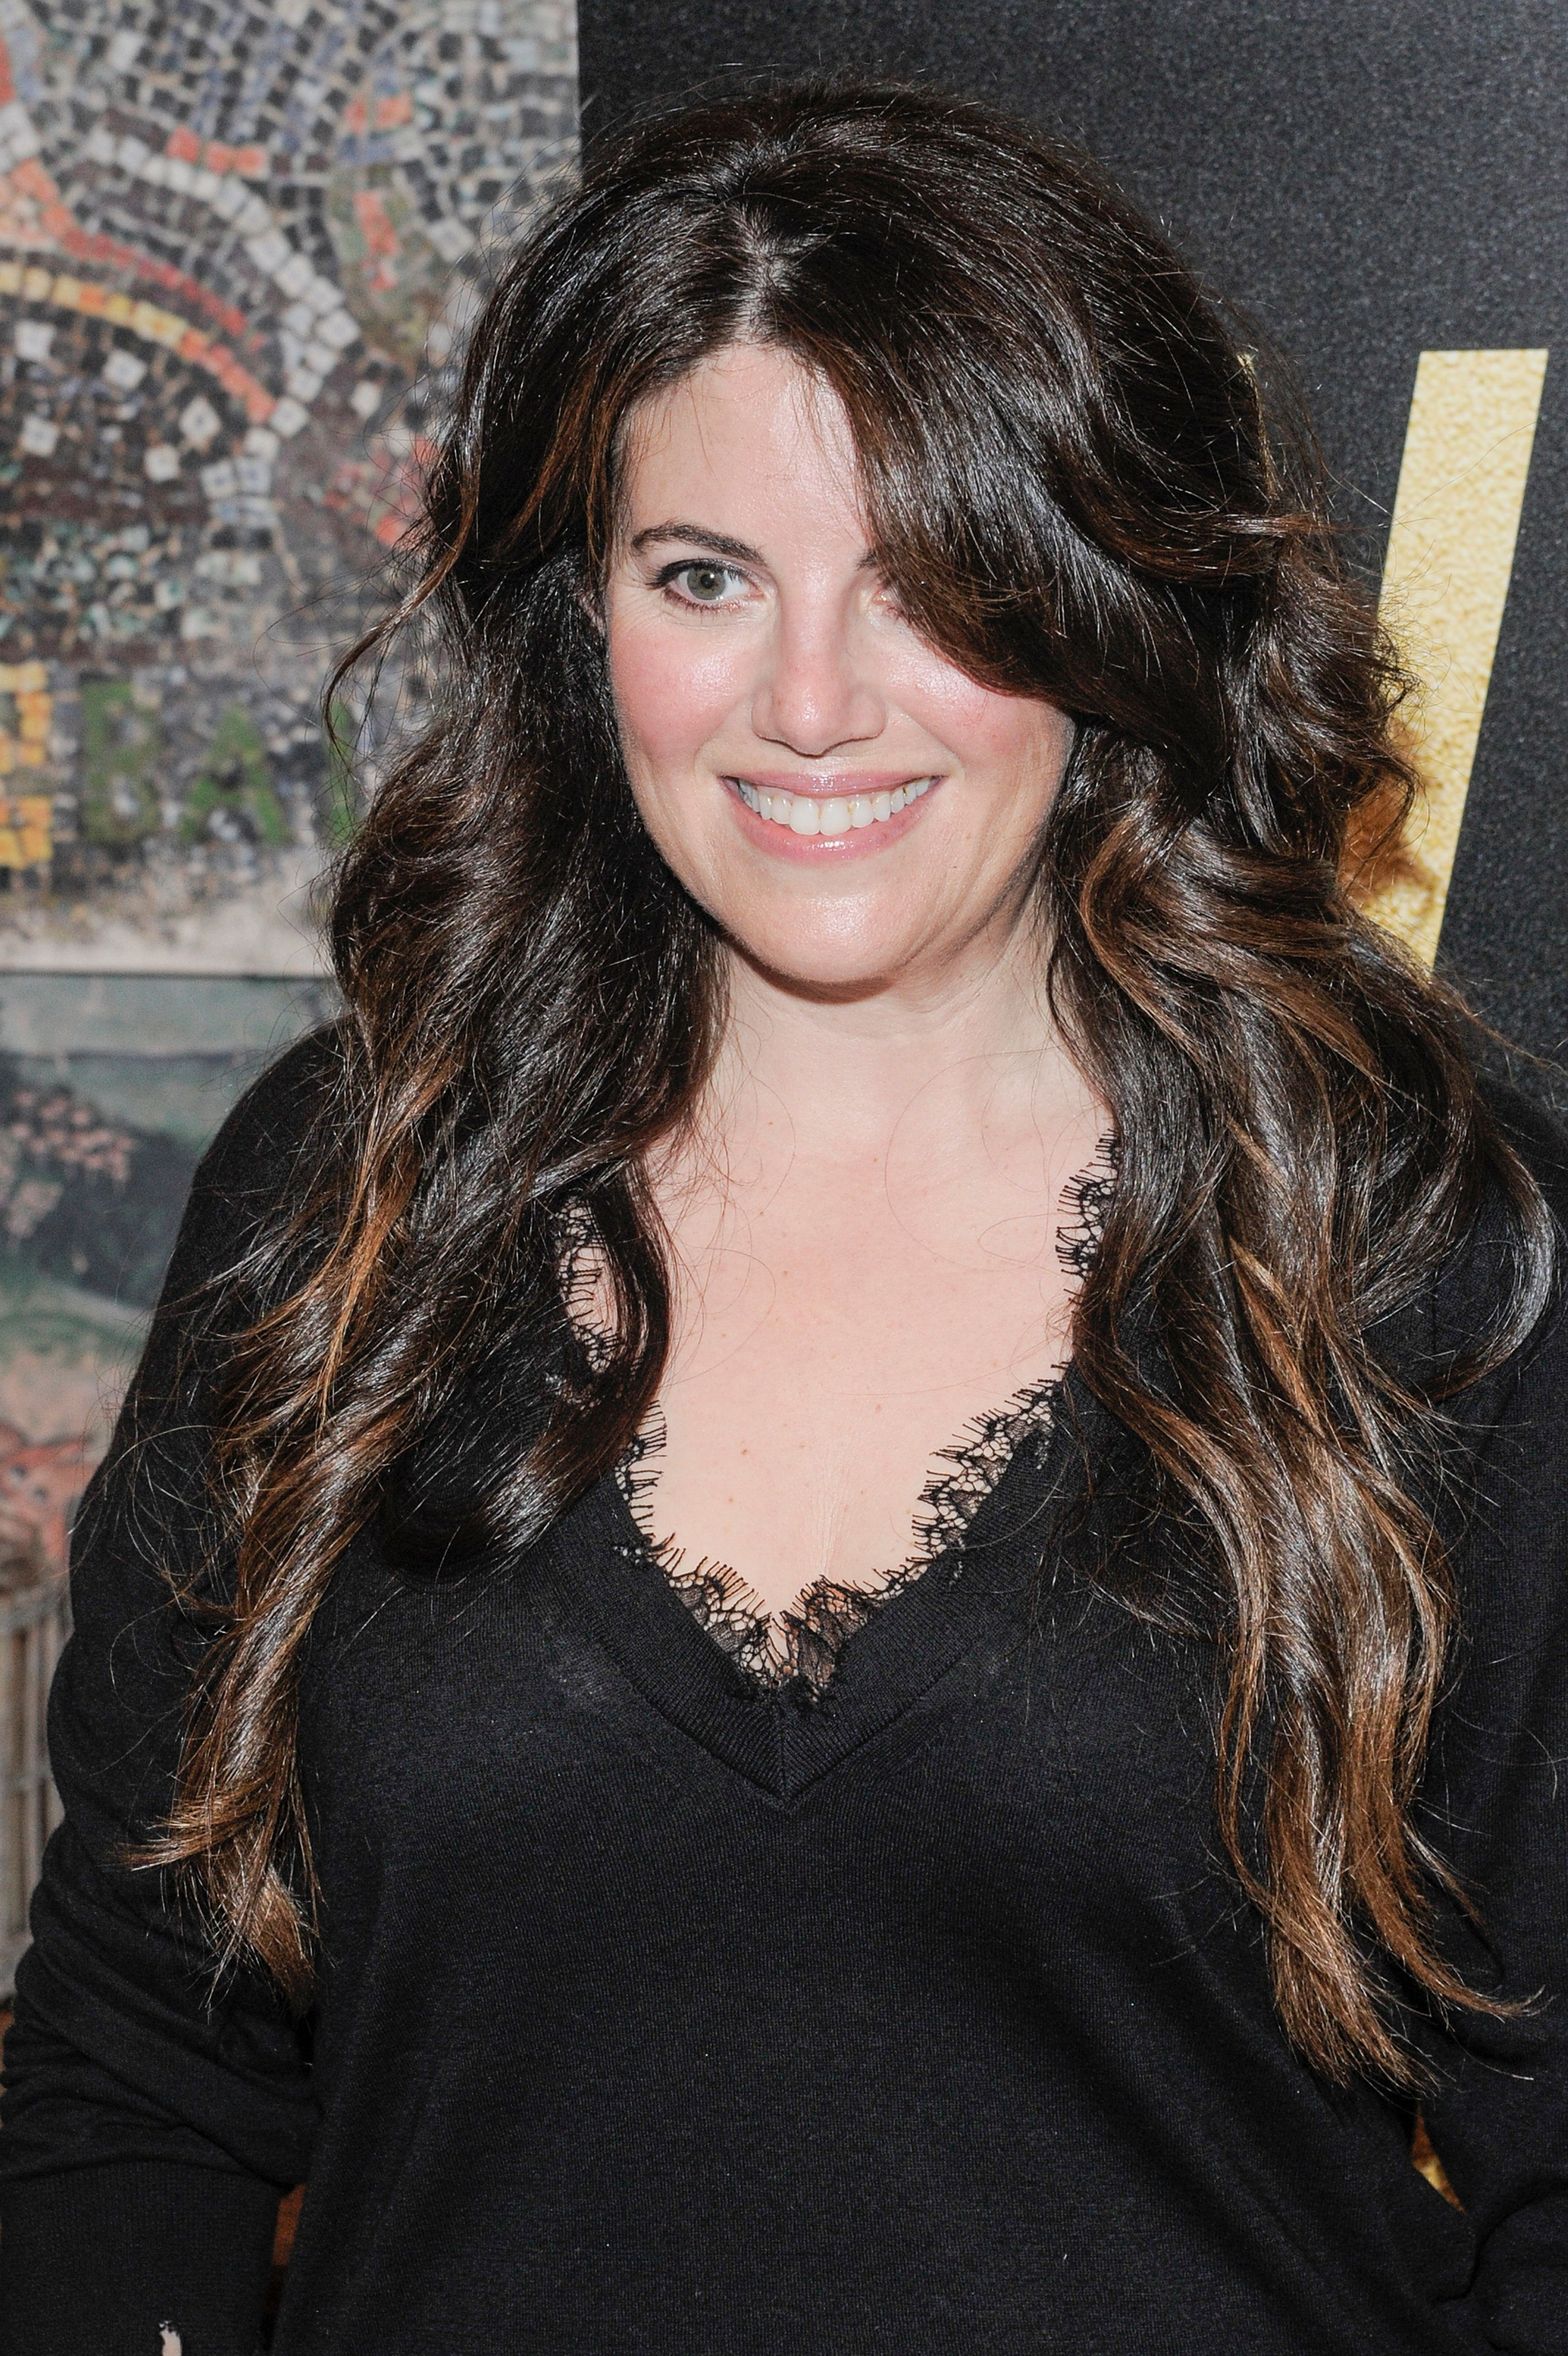 THE WHITBY HOTEL (18 W 56TH STRE, NEW YORK, UNITED STATES - 2018/06/27: Monica Lewinsky attends Whitney New York Screening at the Whitby Hotel. (Photo by Lev Radin/Pacific Press/LightRocket via Getty Images)